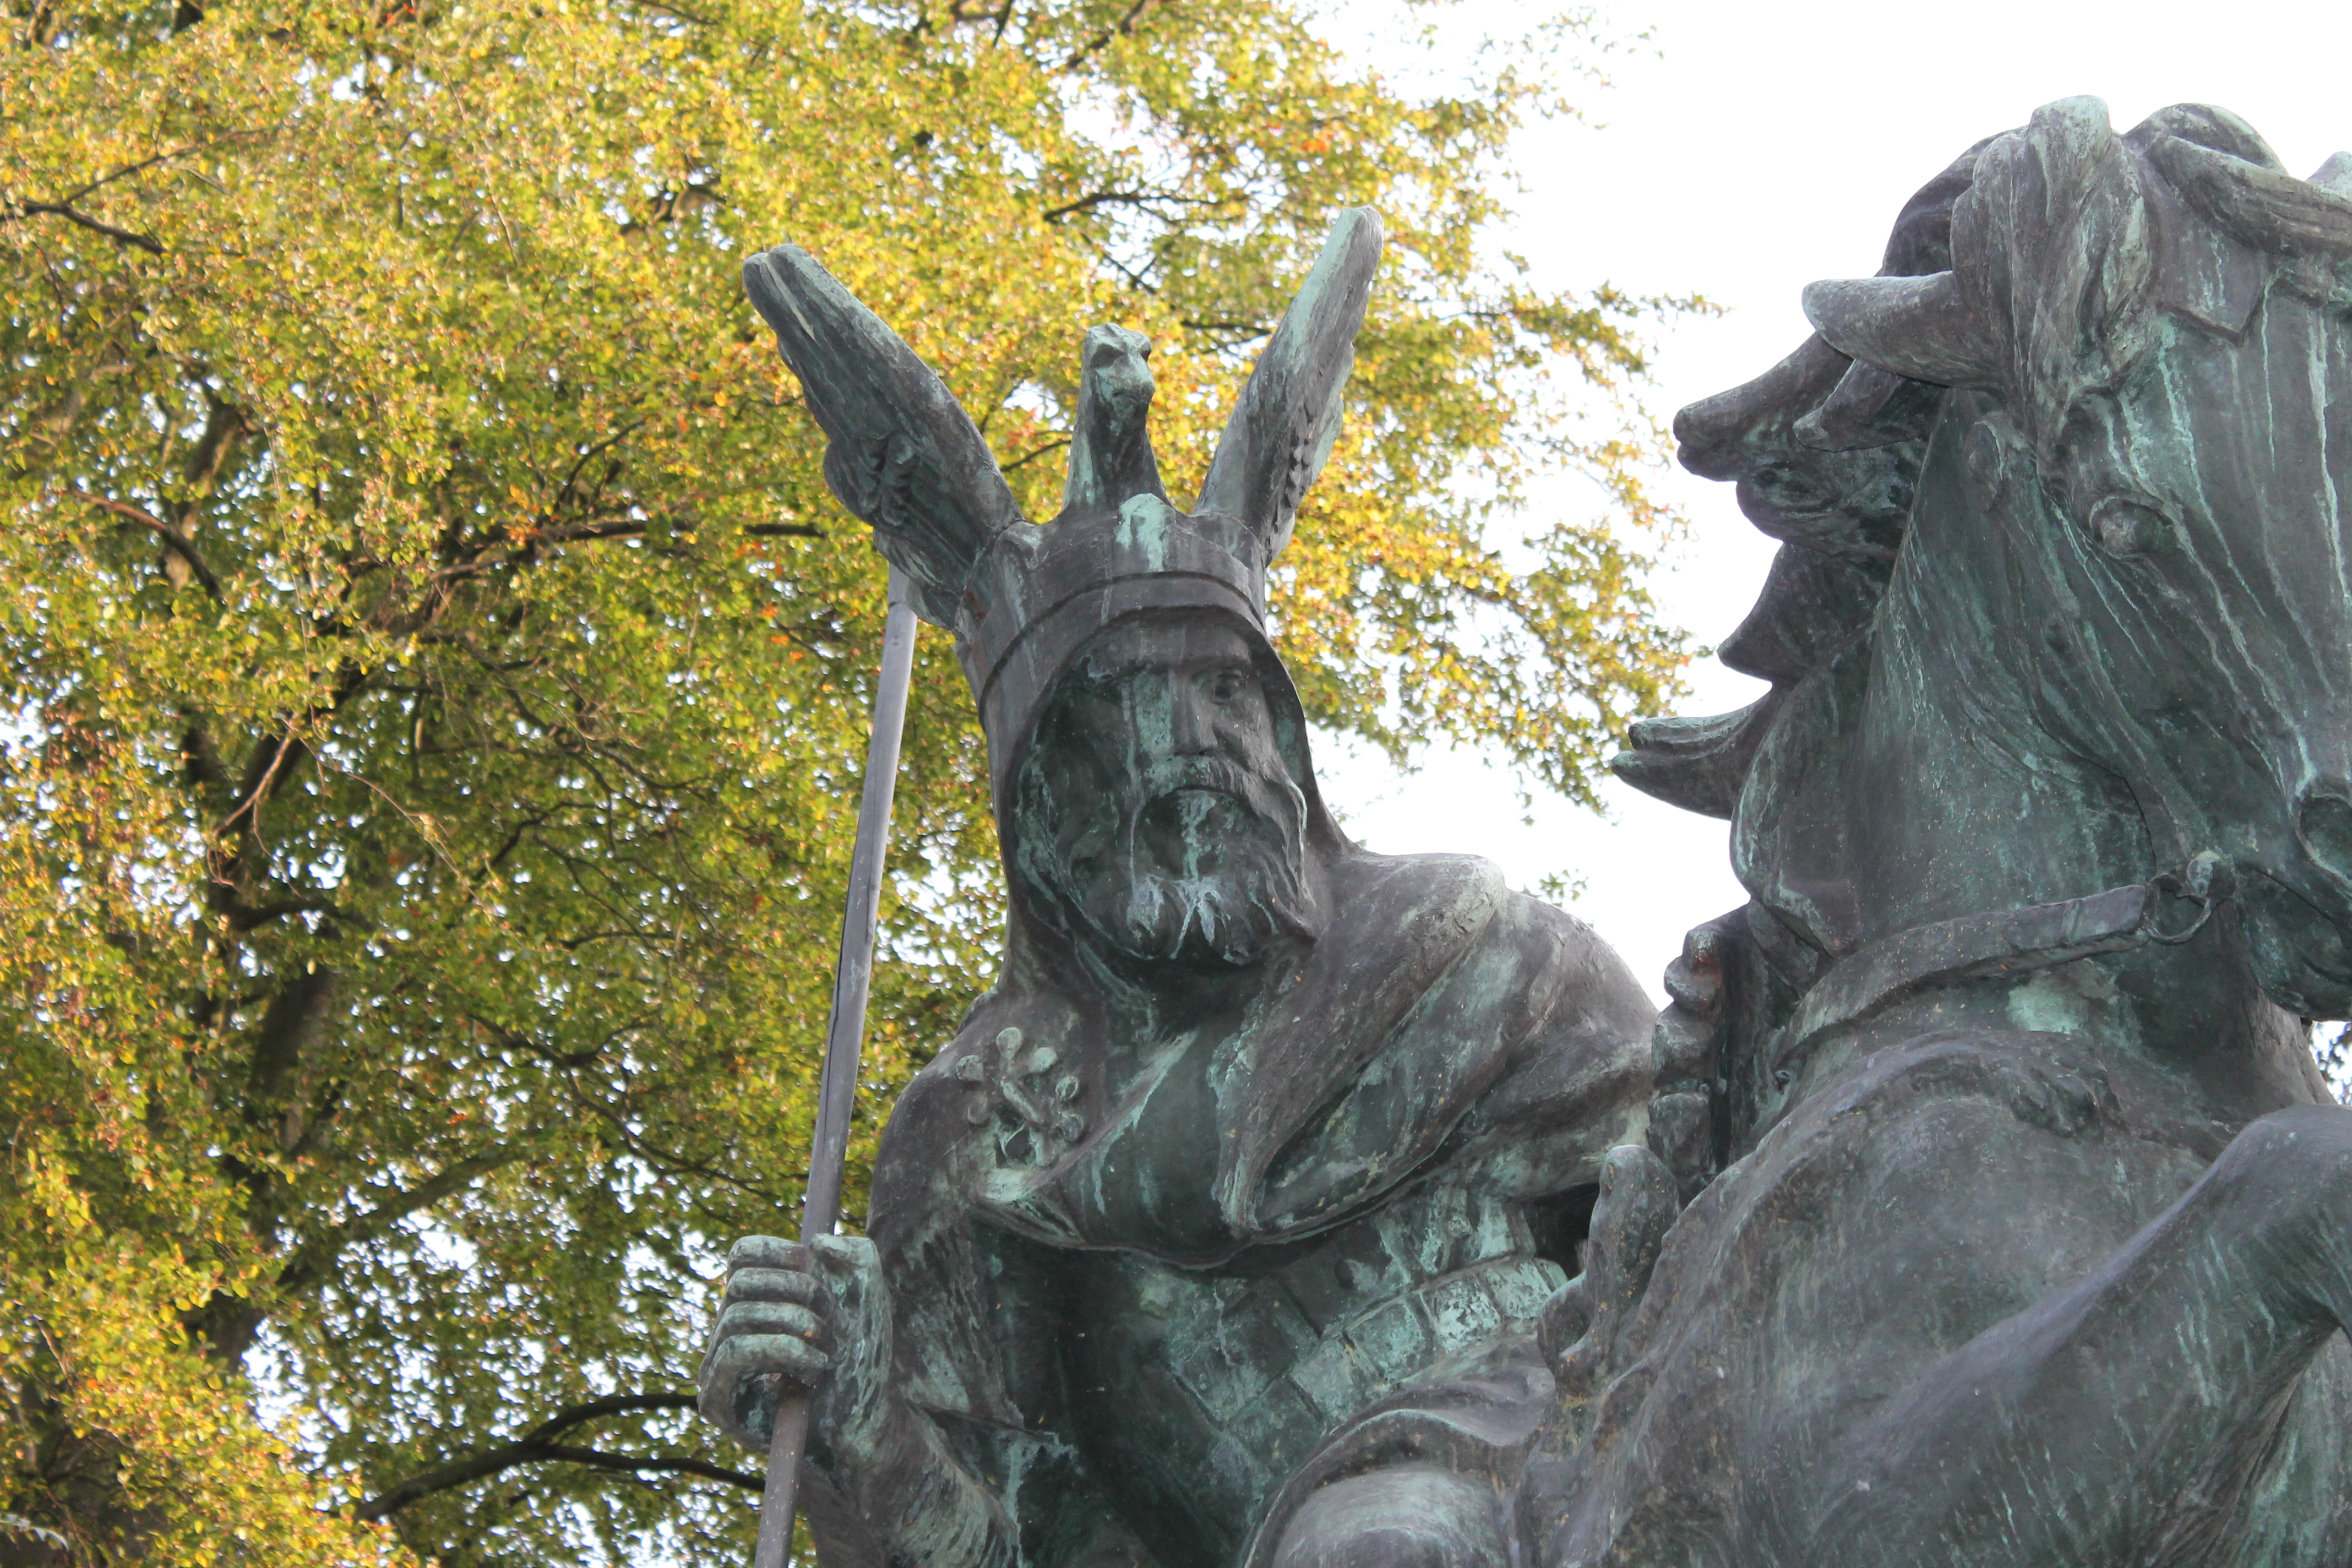 Detail of statue in Herford, Germany.